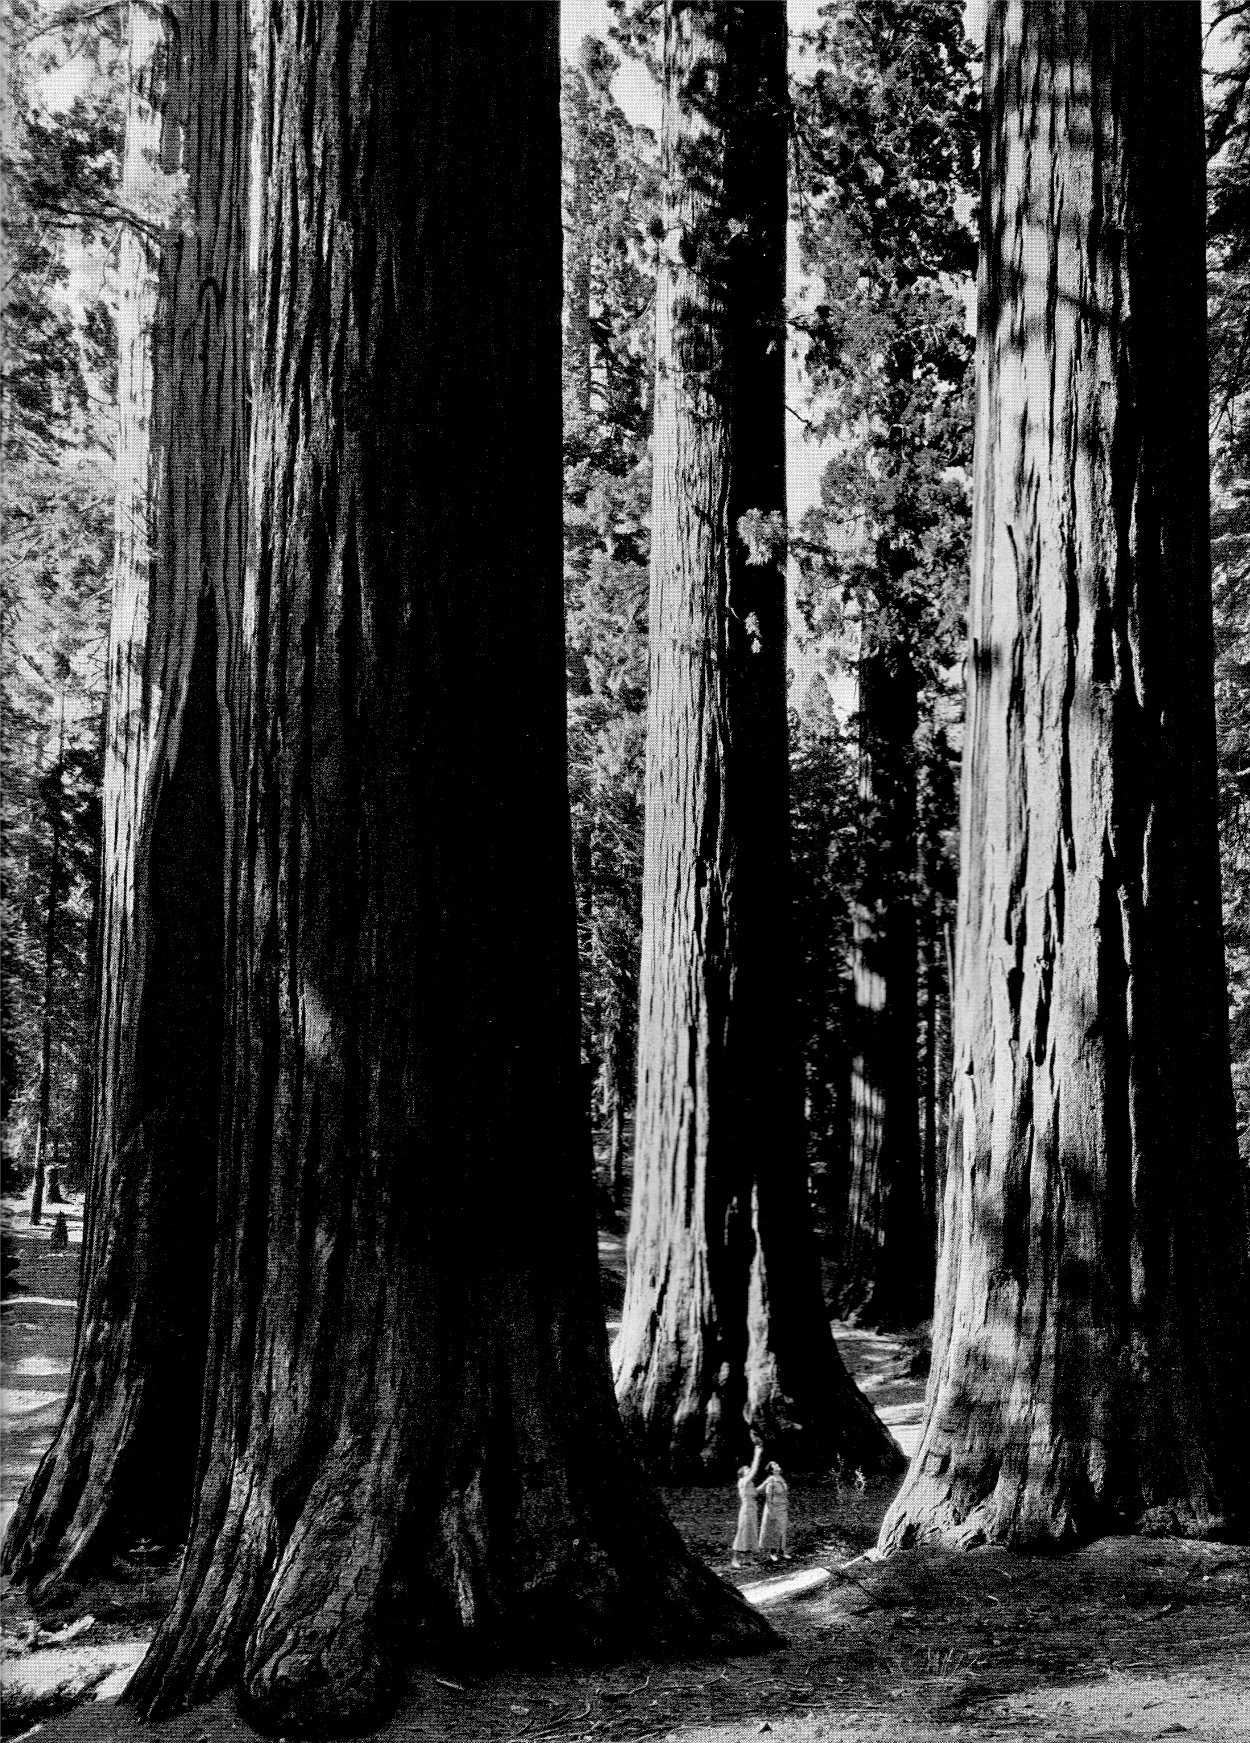 """The Mariposa Grove of Big Trees in Yosemite, by Ansel Adams, from his 1938 essay,  """"The Four Seasons in Yosemite National Park"""" . Adams used his photographs to help establish Sequoia and Kings Canyon National Parks."""